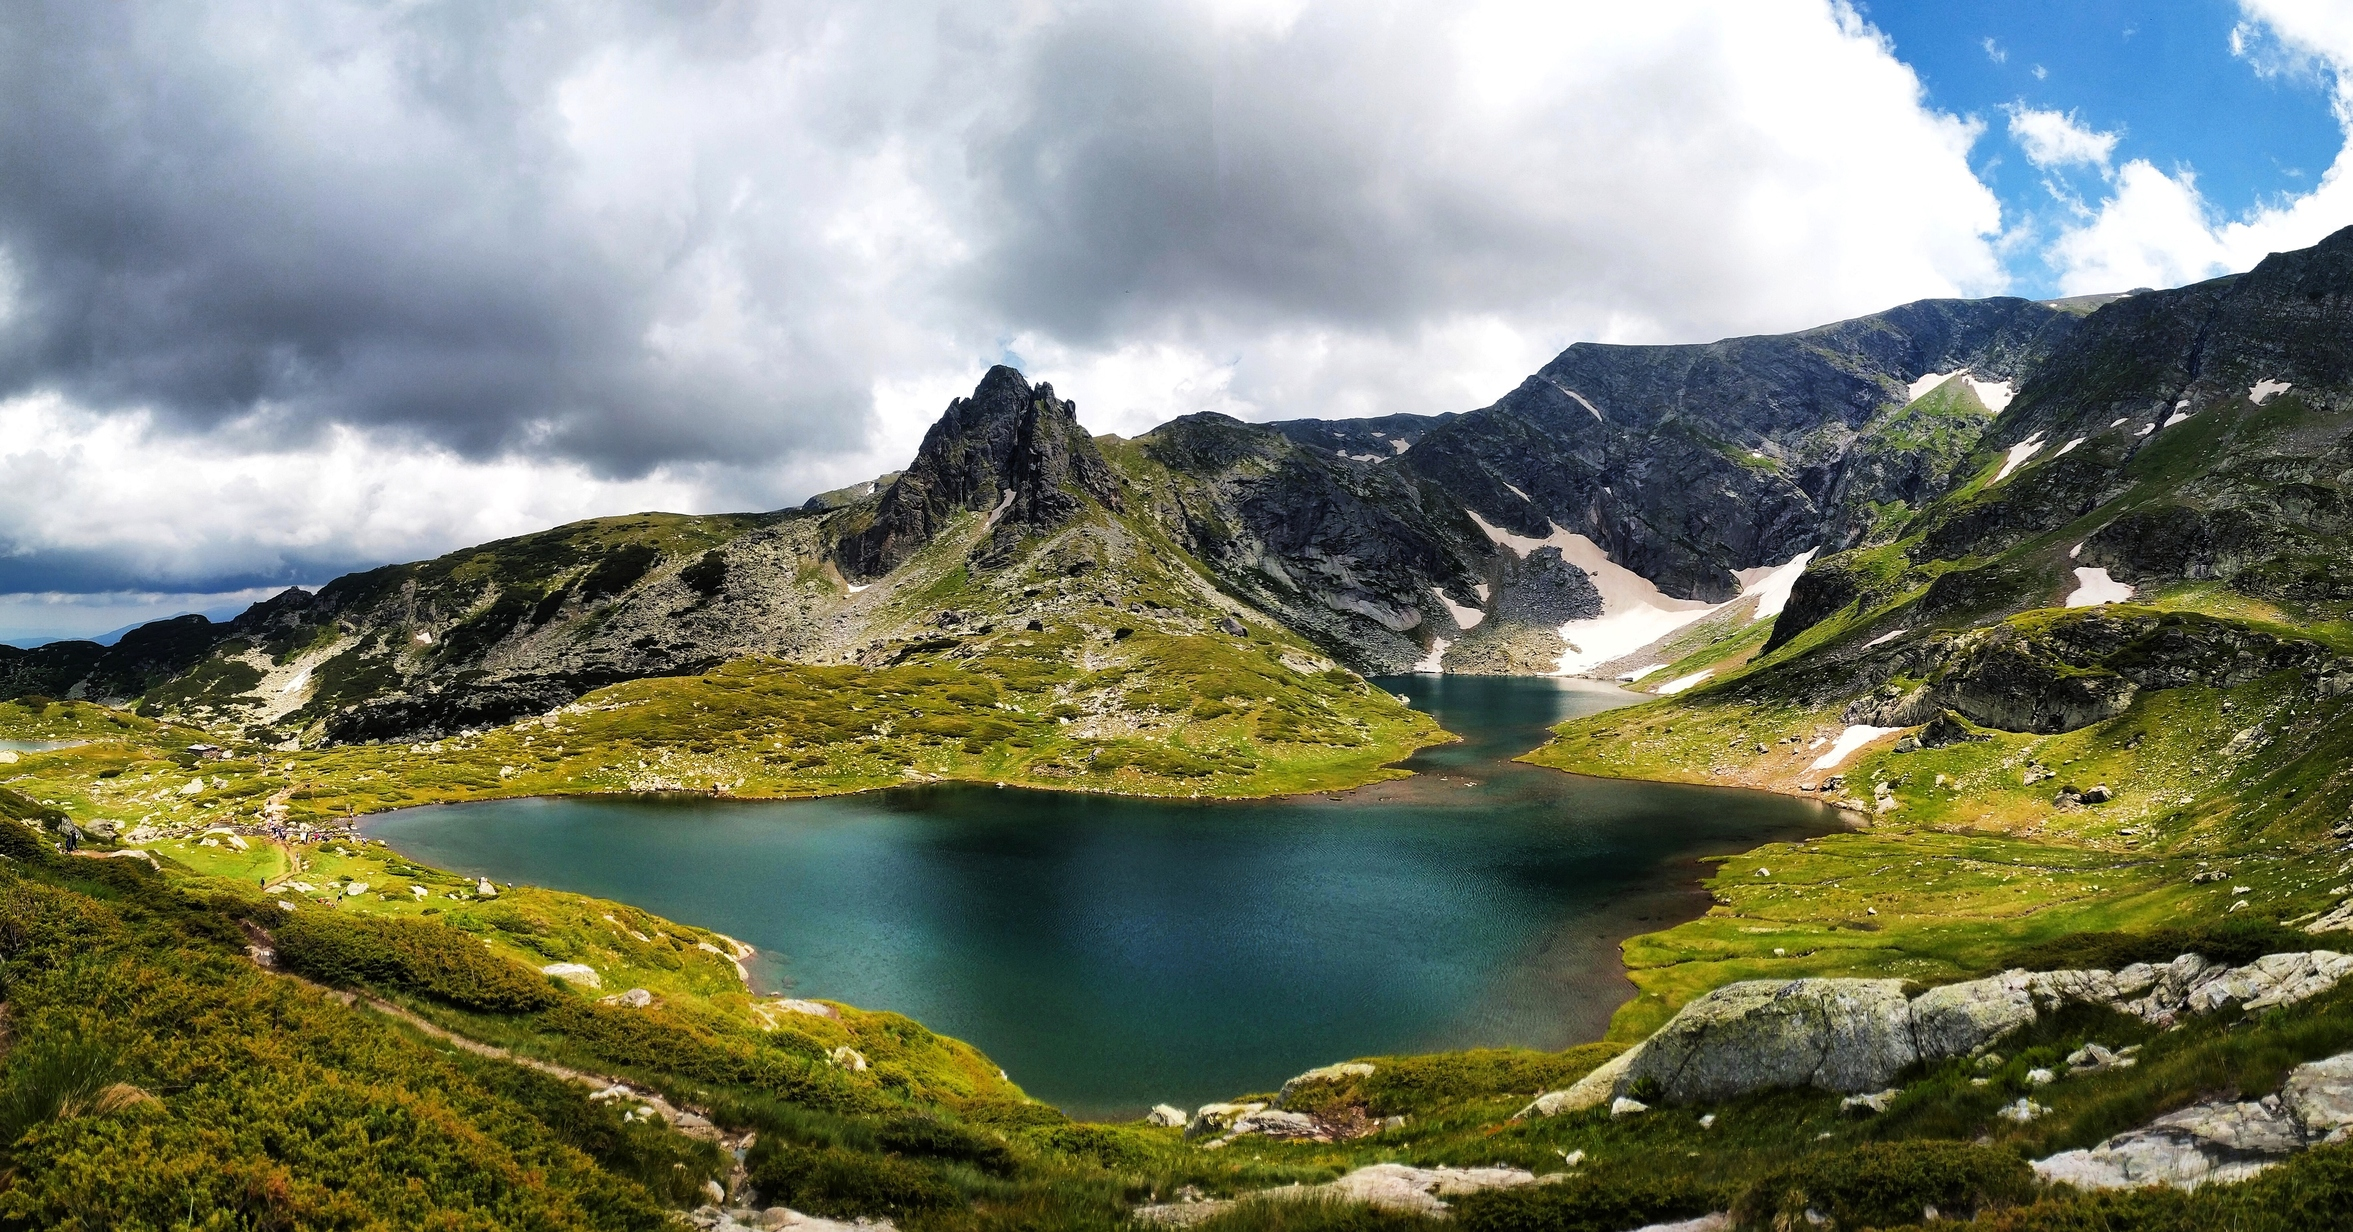 Why Bulgaria is one of the most underrated European destinations you should visit